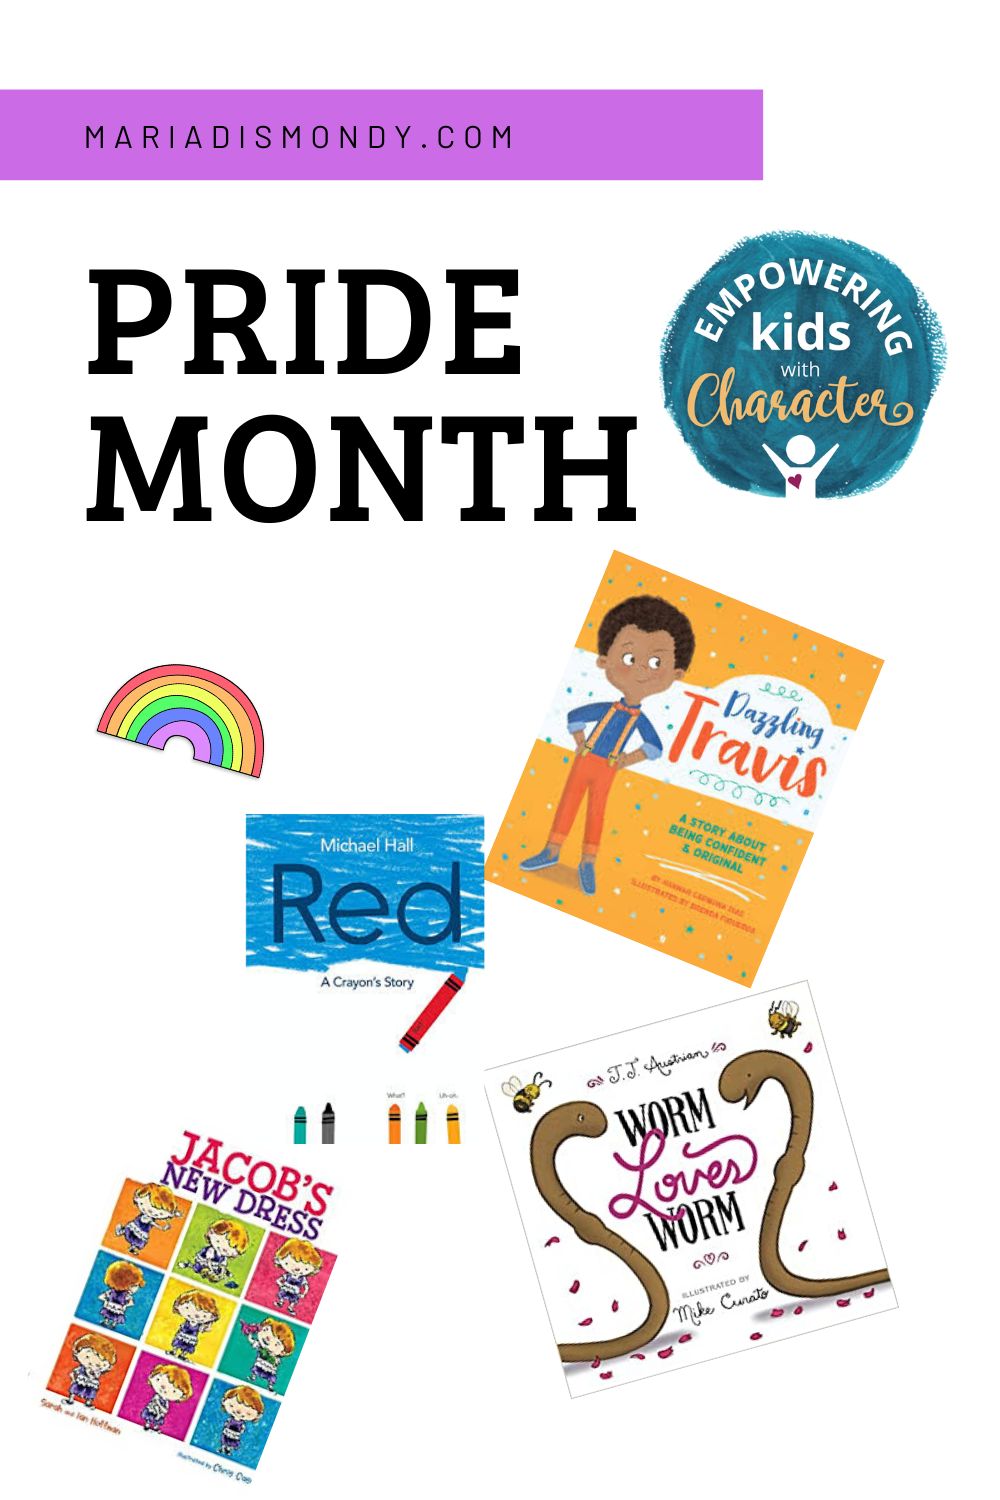 PRIDE Books for Families